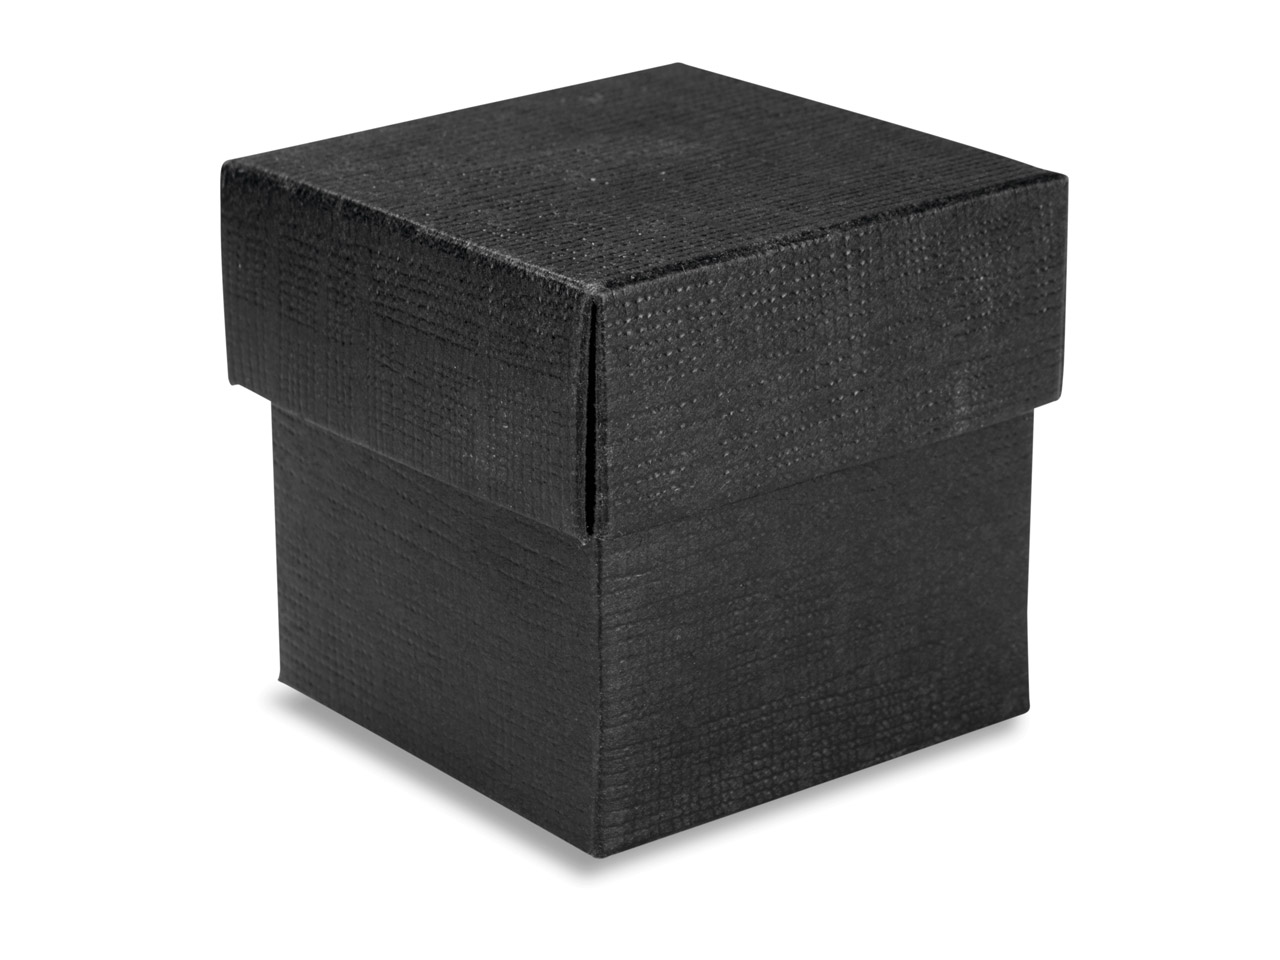 Flat Pack Square Box Black         Pack of 10